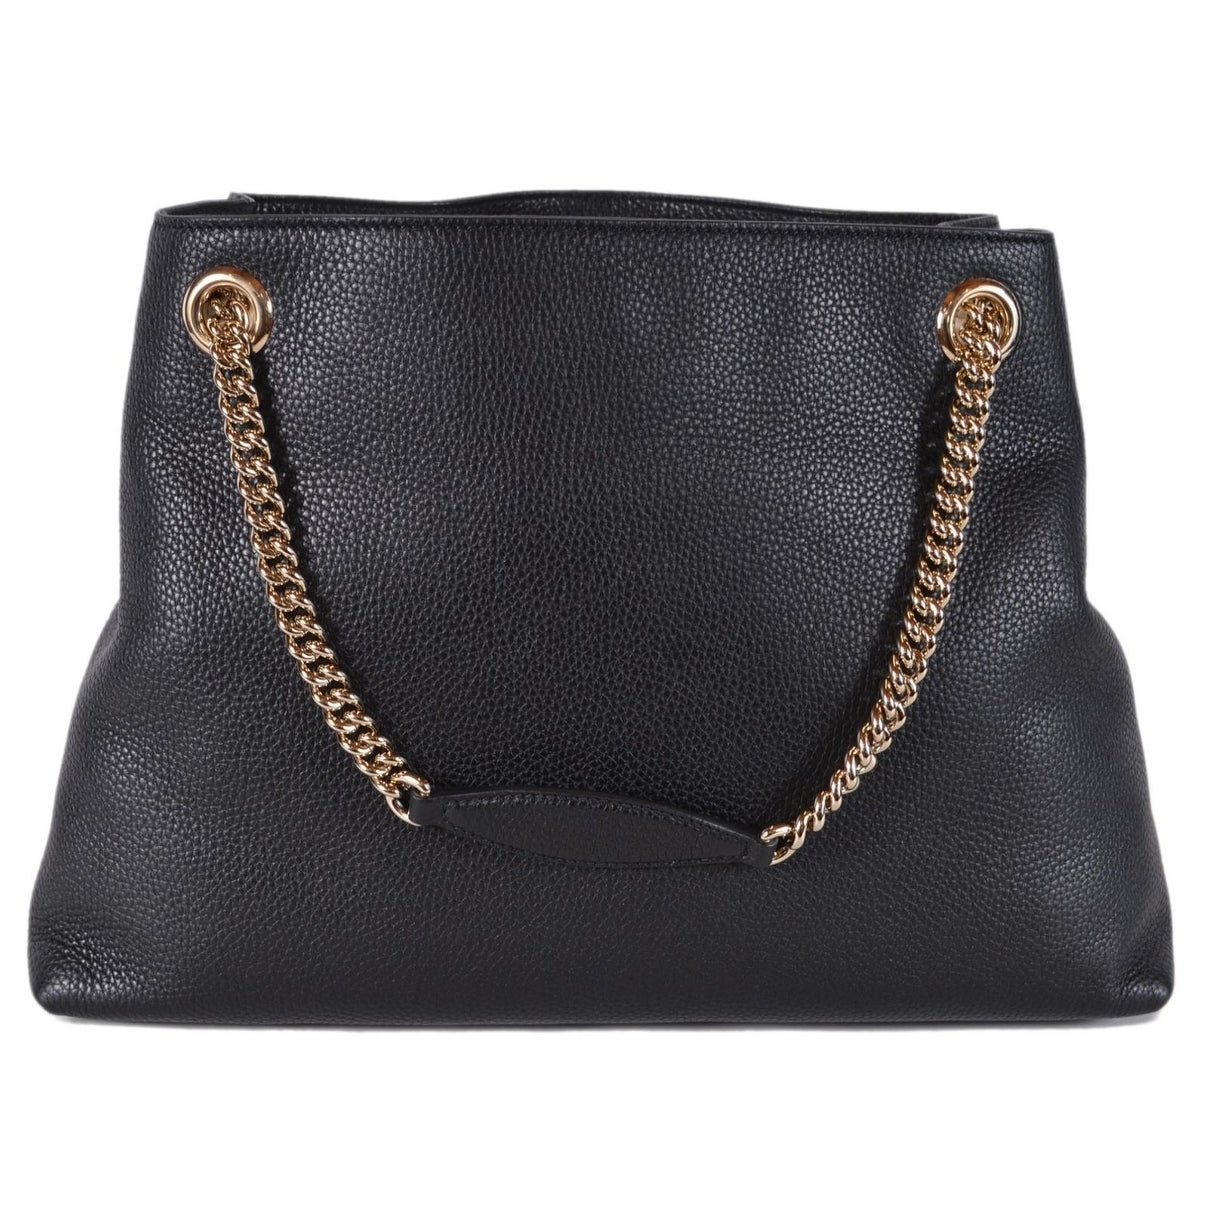 556a1c9a015 Shop Gucci Women s 536196 Black Leather SOHO Chain Strap Purse Handbag Tote  - Free Shipping Today - Overstock - 25576109